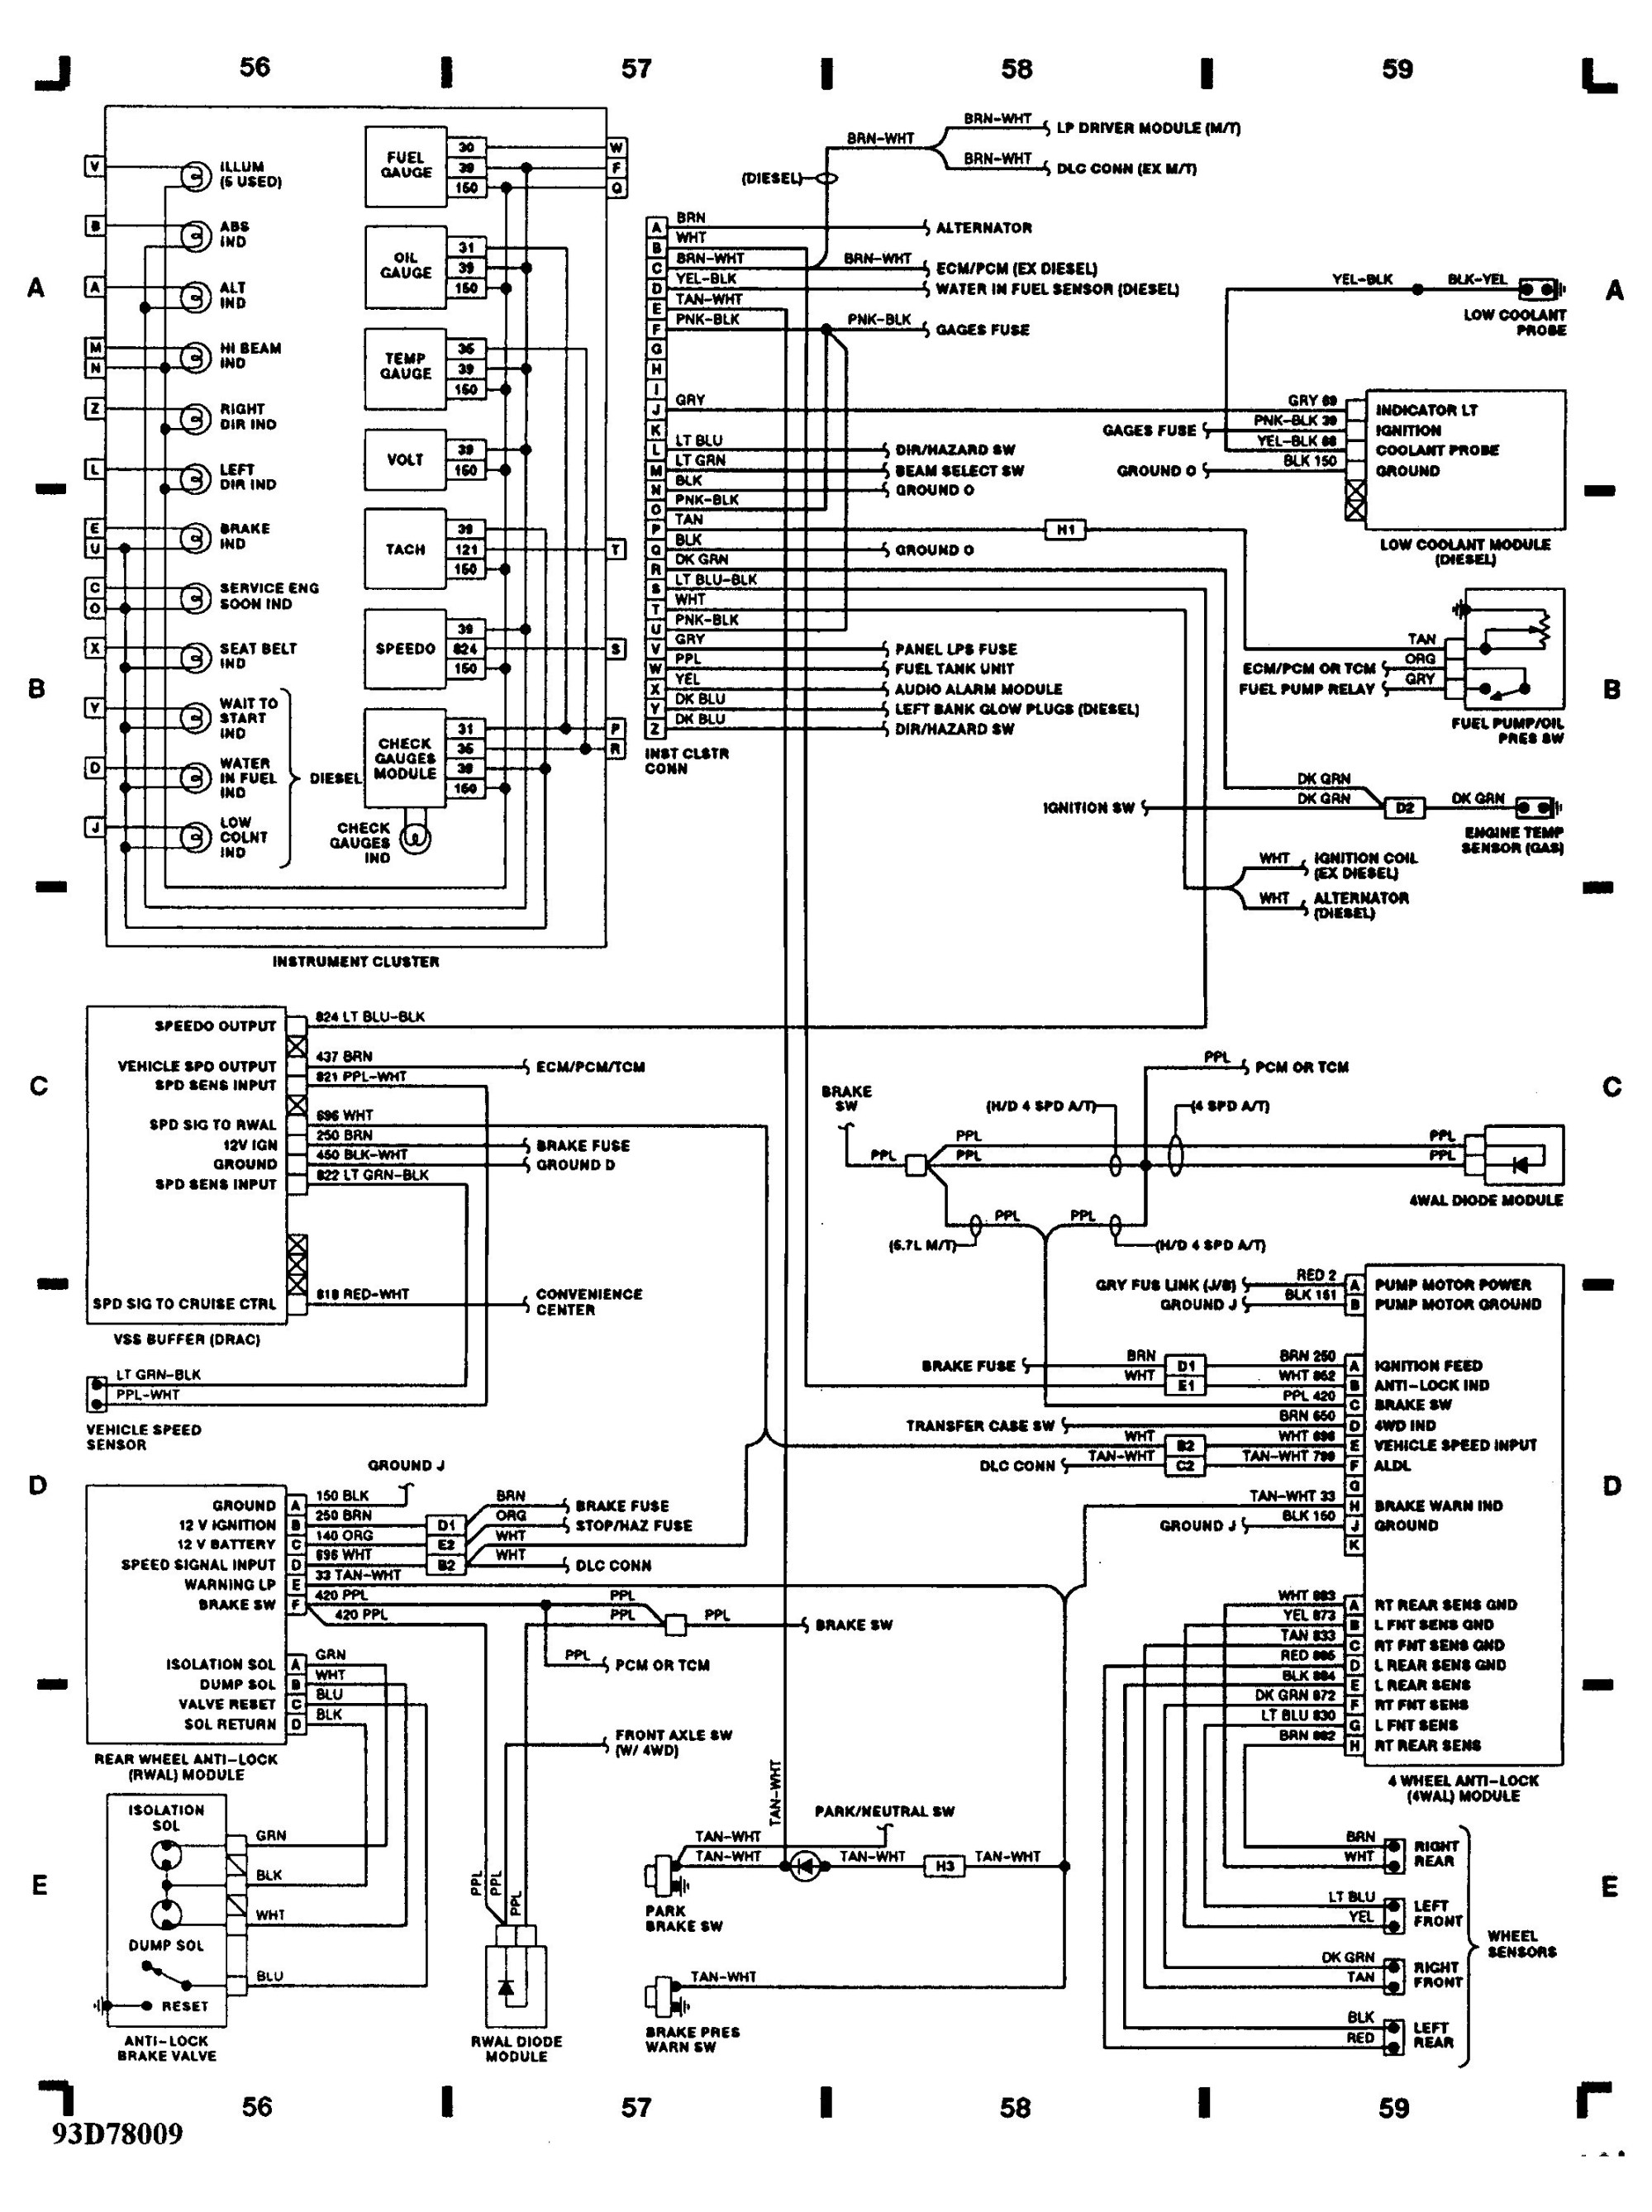 hight resolution of lumina wiring diagram universal wiring diagram 1991 chevy lumina wiring diagram 91 lumina wiring diagram